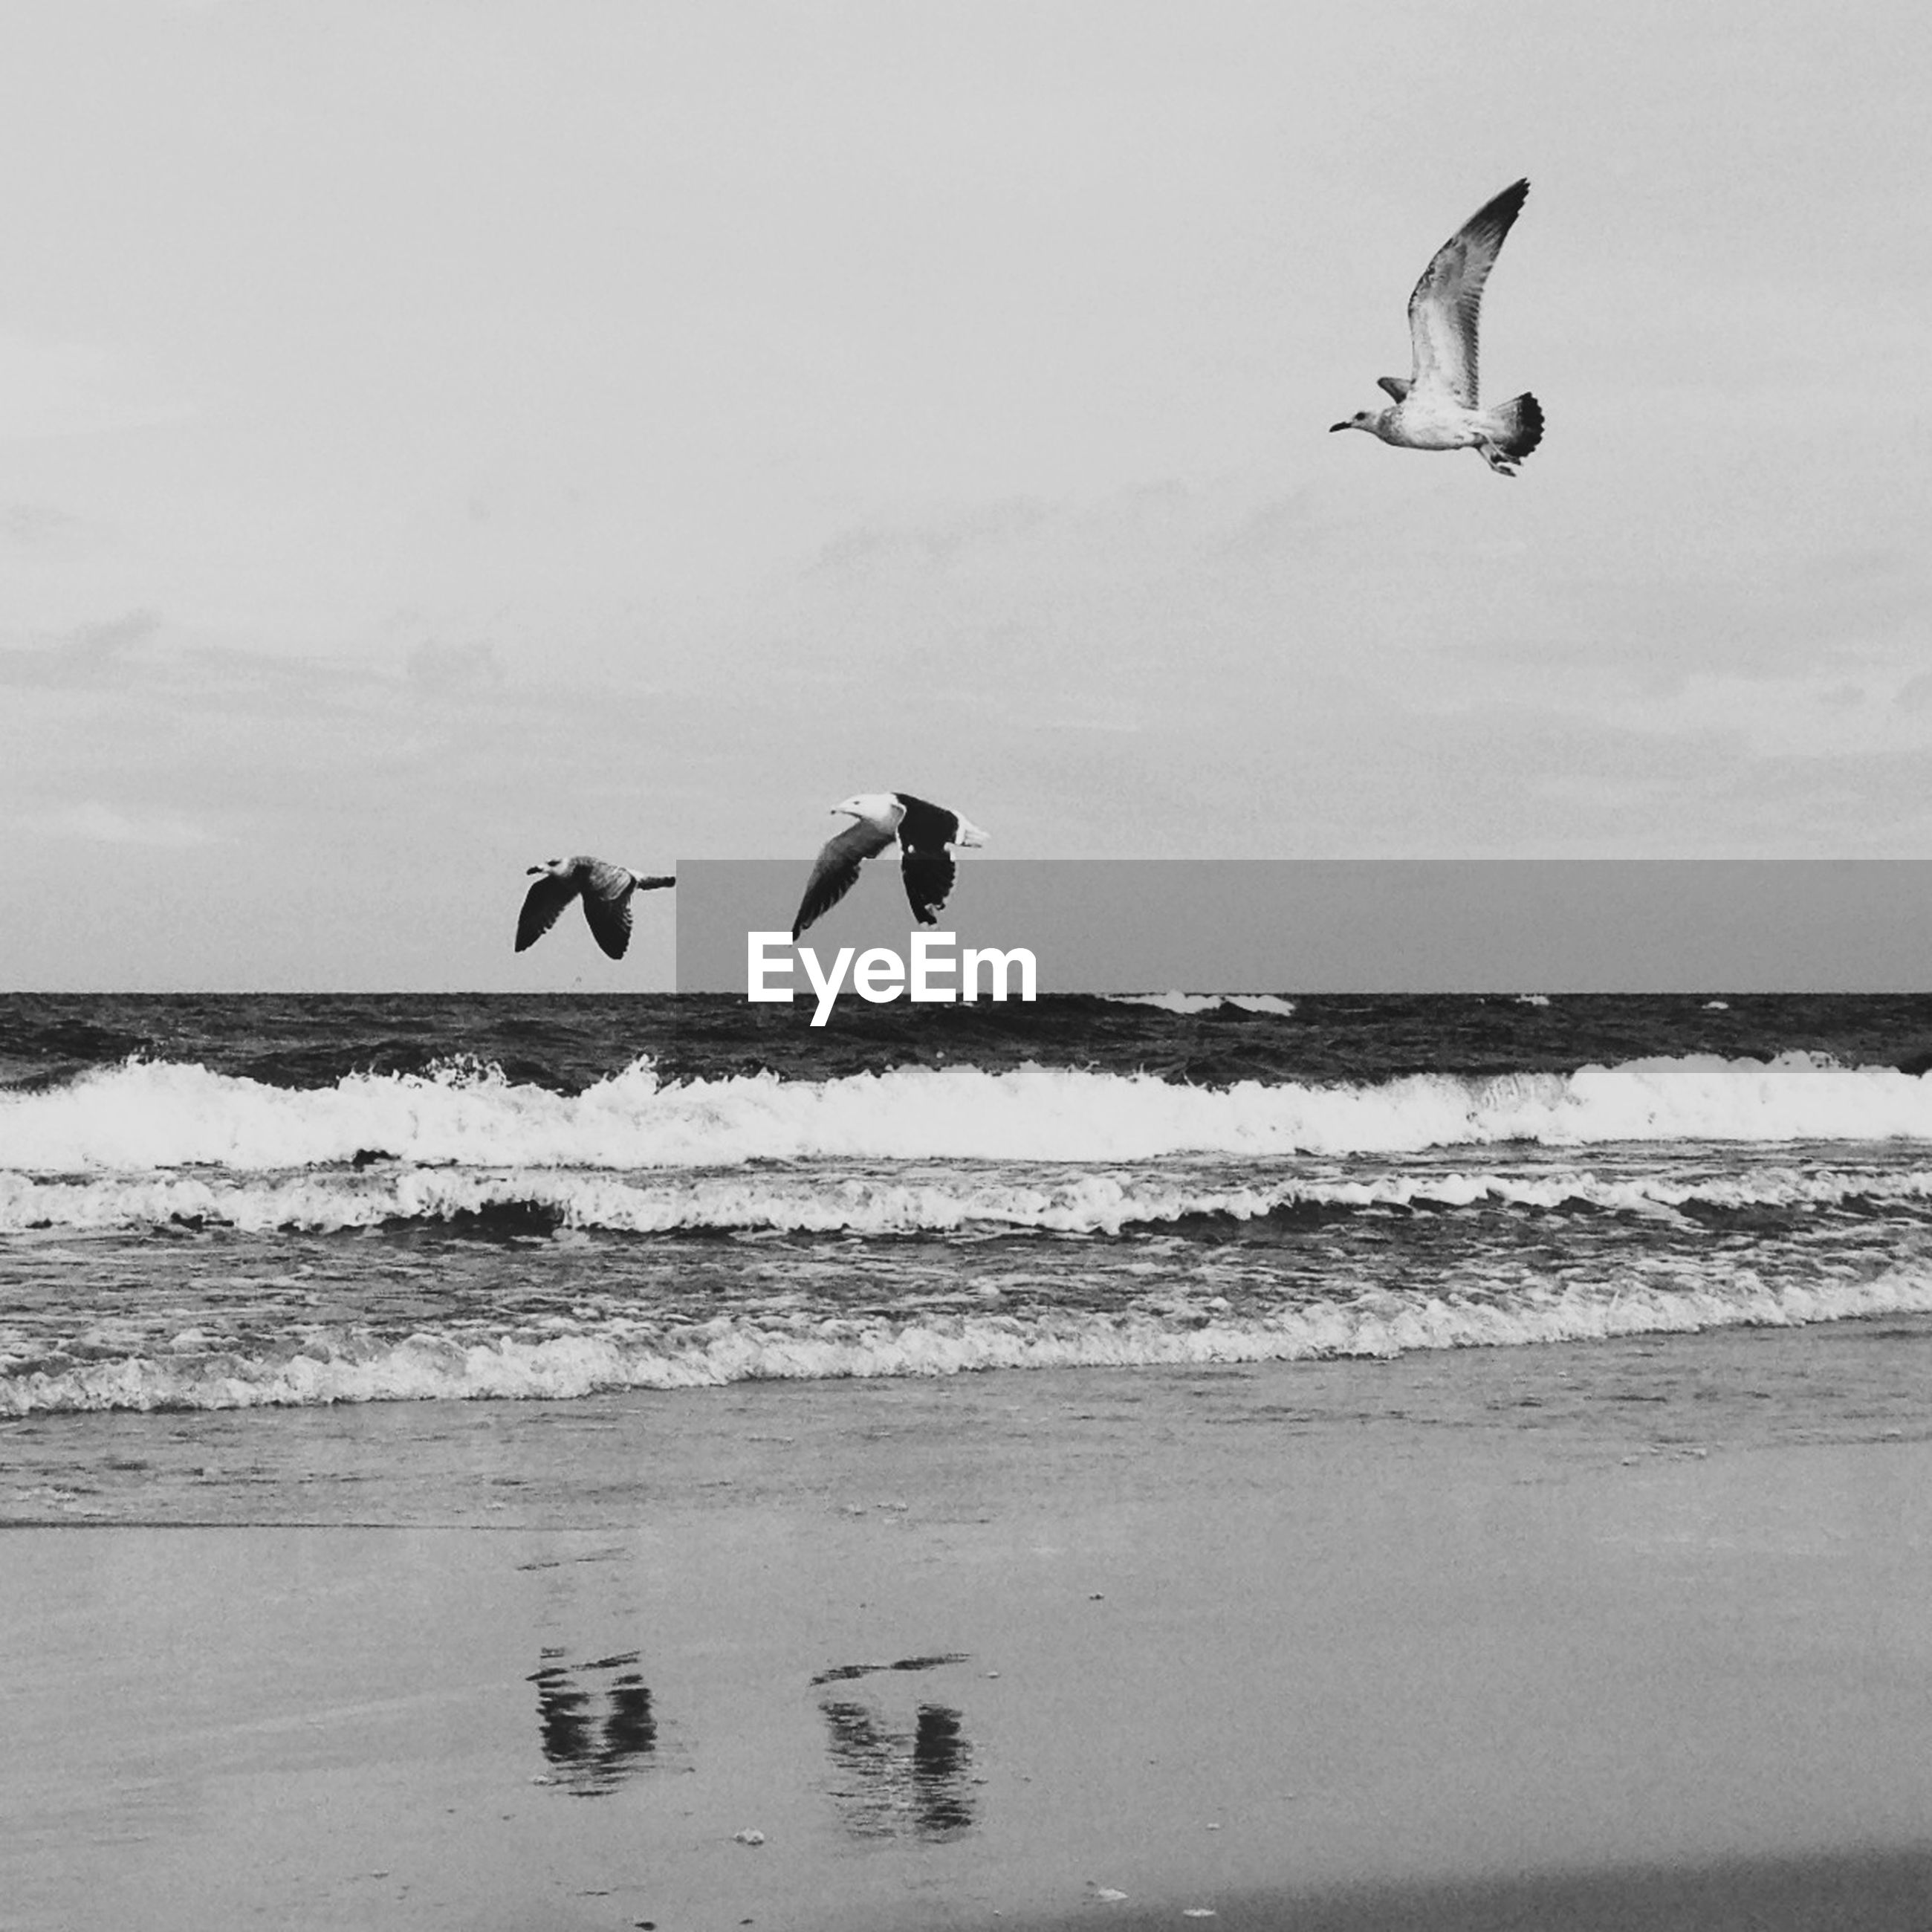 Seagulls by sea